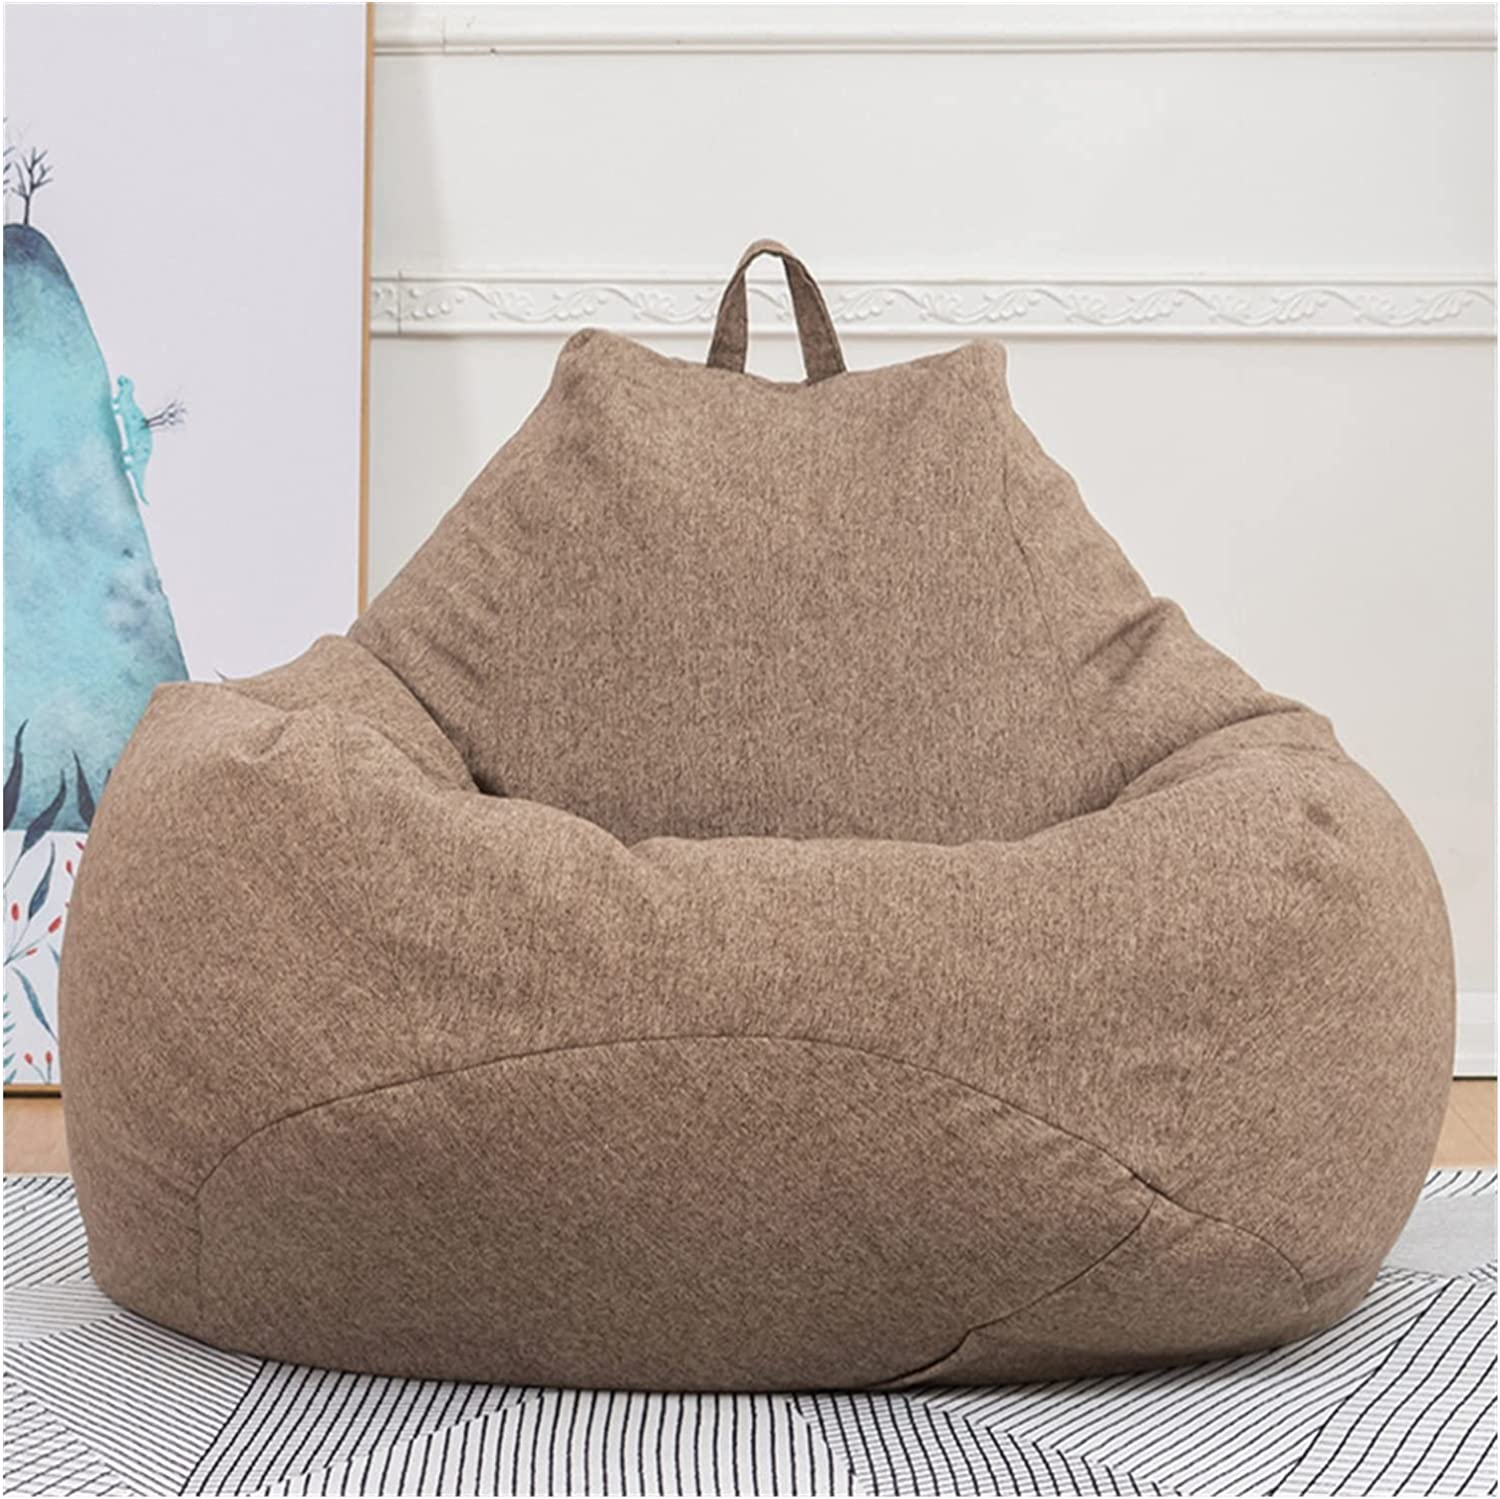 ppqq Comfortable Bean Bag Oklahoma City Mall New item Chair Large Sofa Cover Chairs